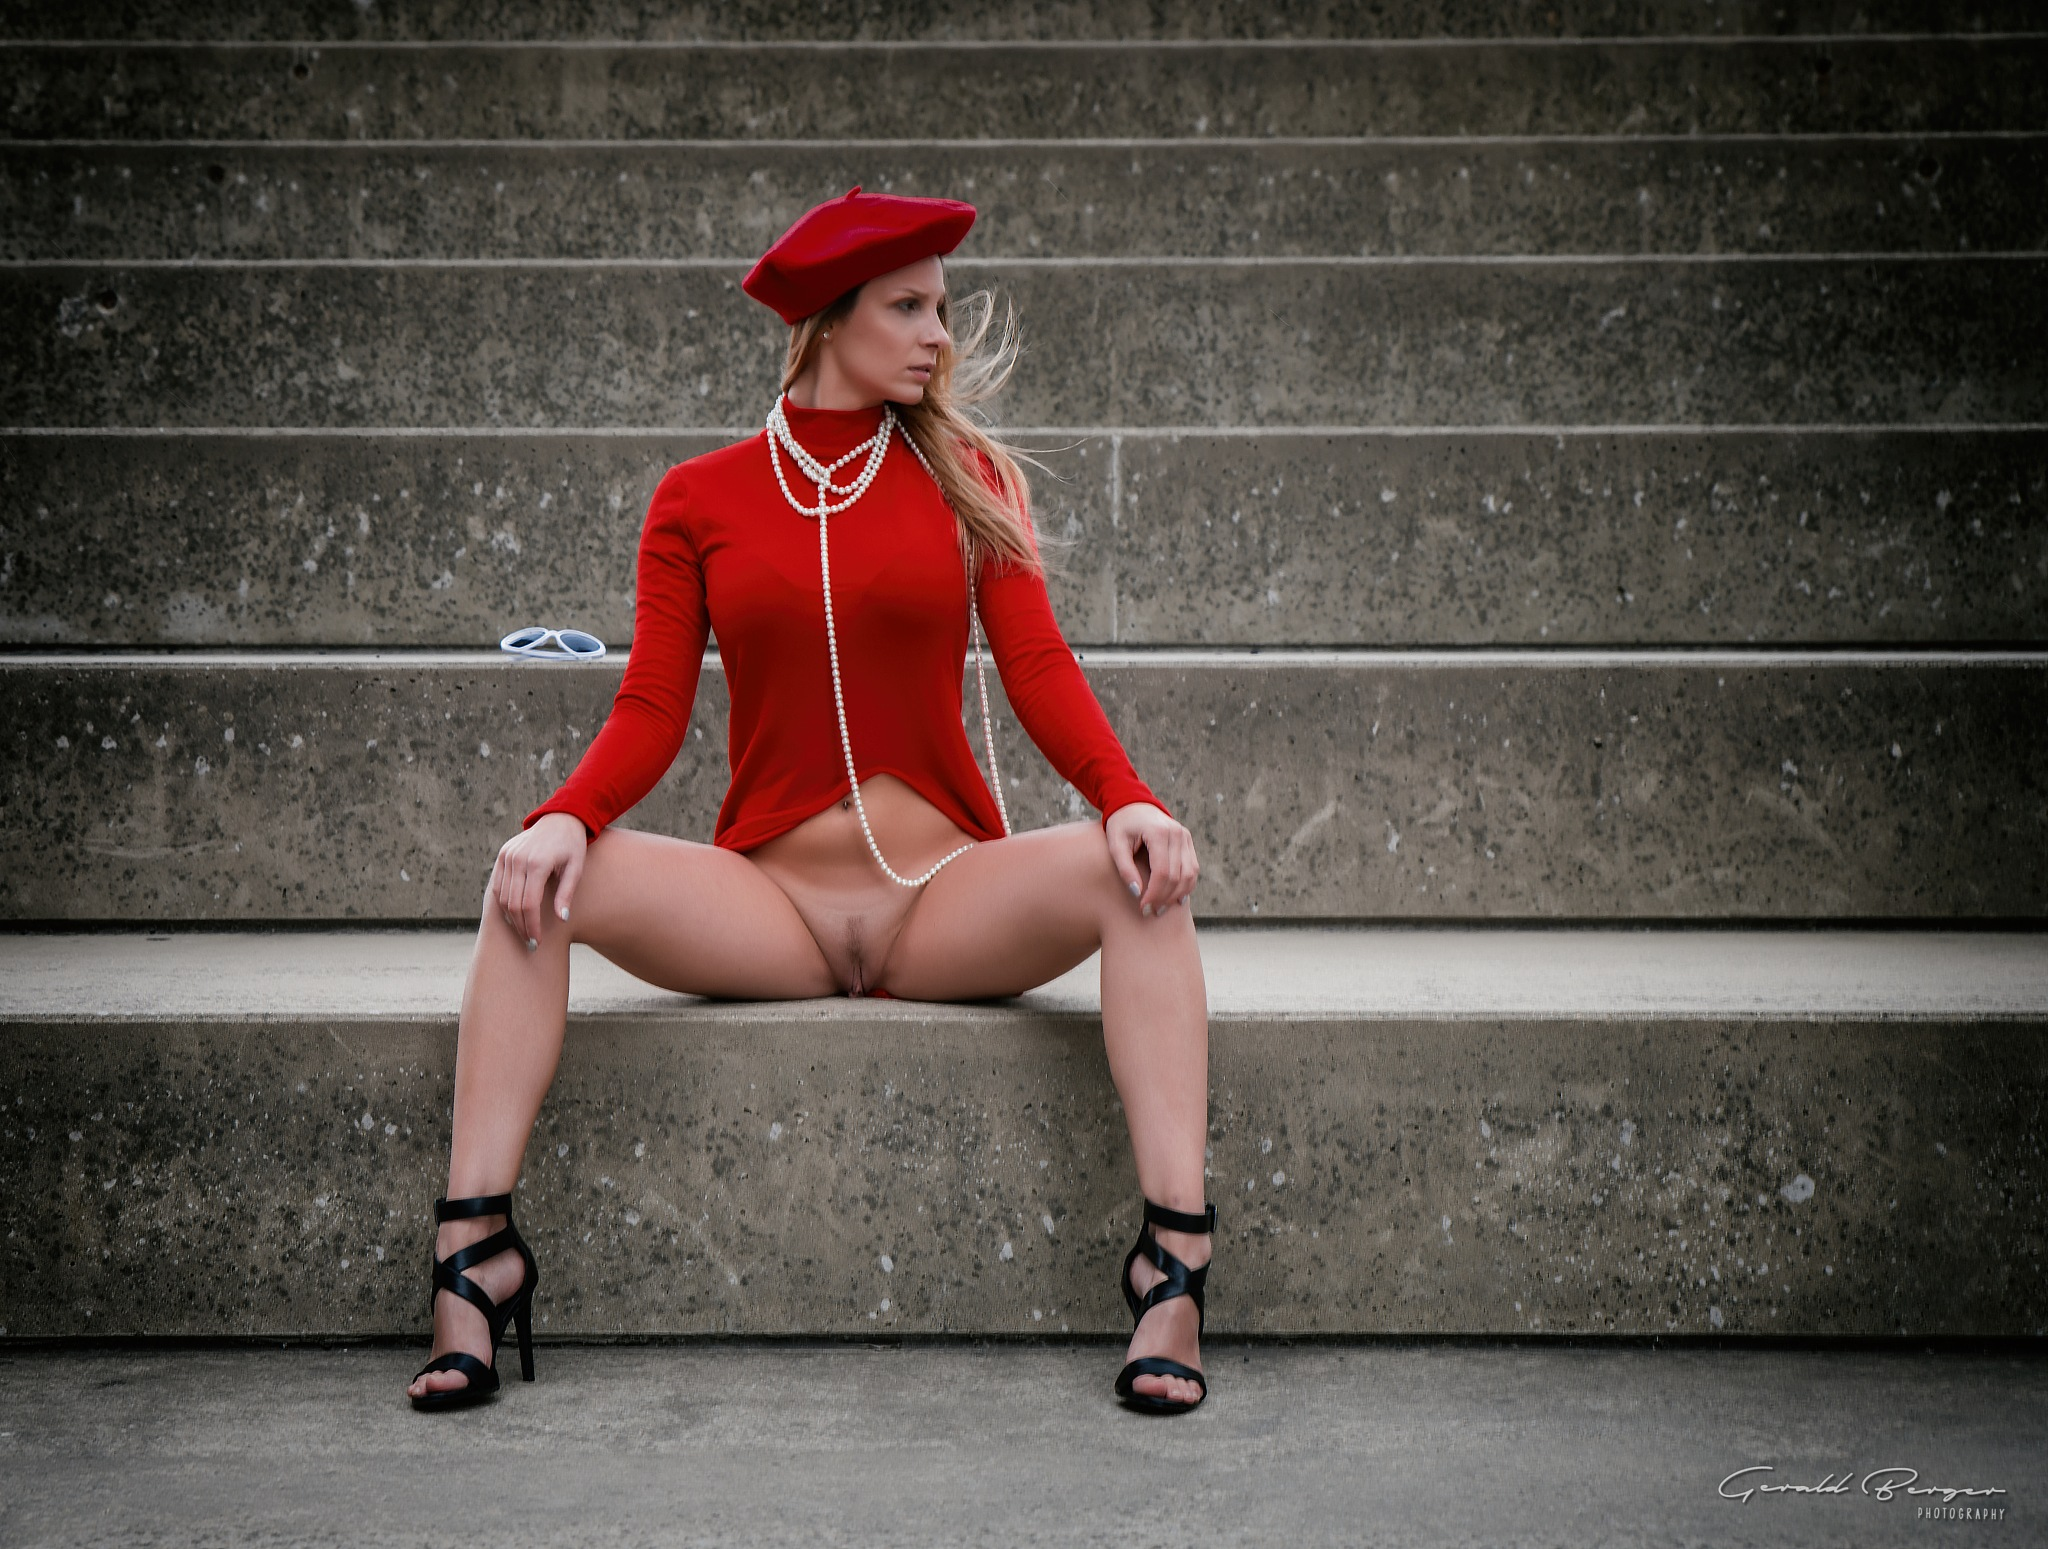 Red Dress by Gerald Berger